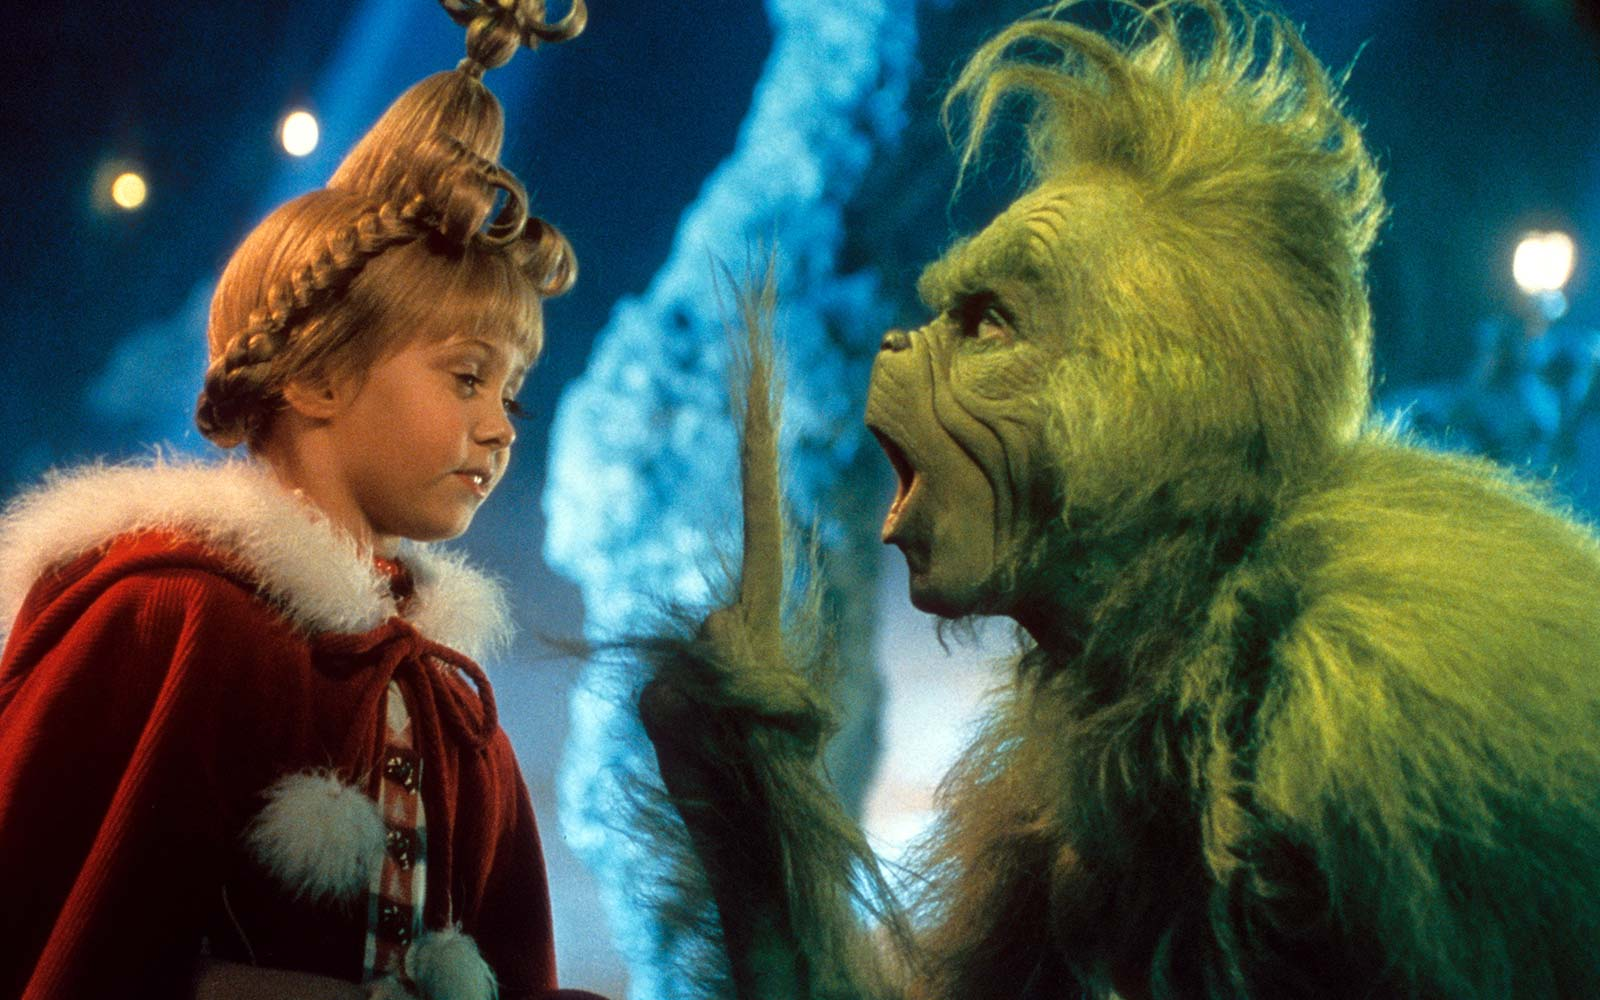 The Best Christmas Movies to Watch on Netflix If You Can't Wait for the Holidays